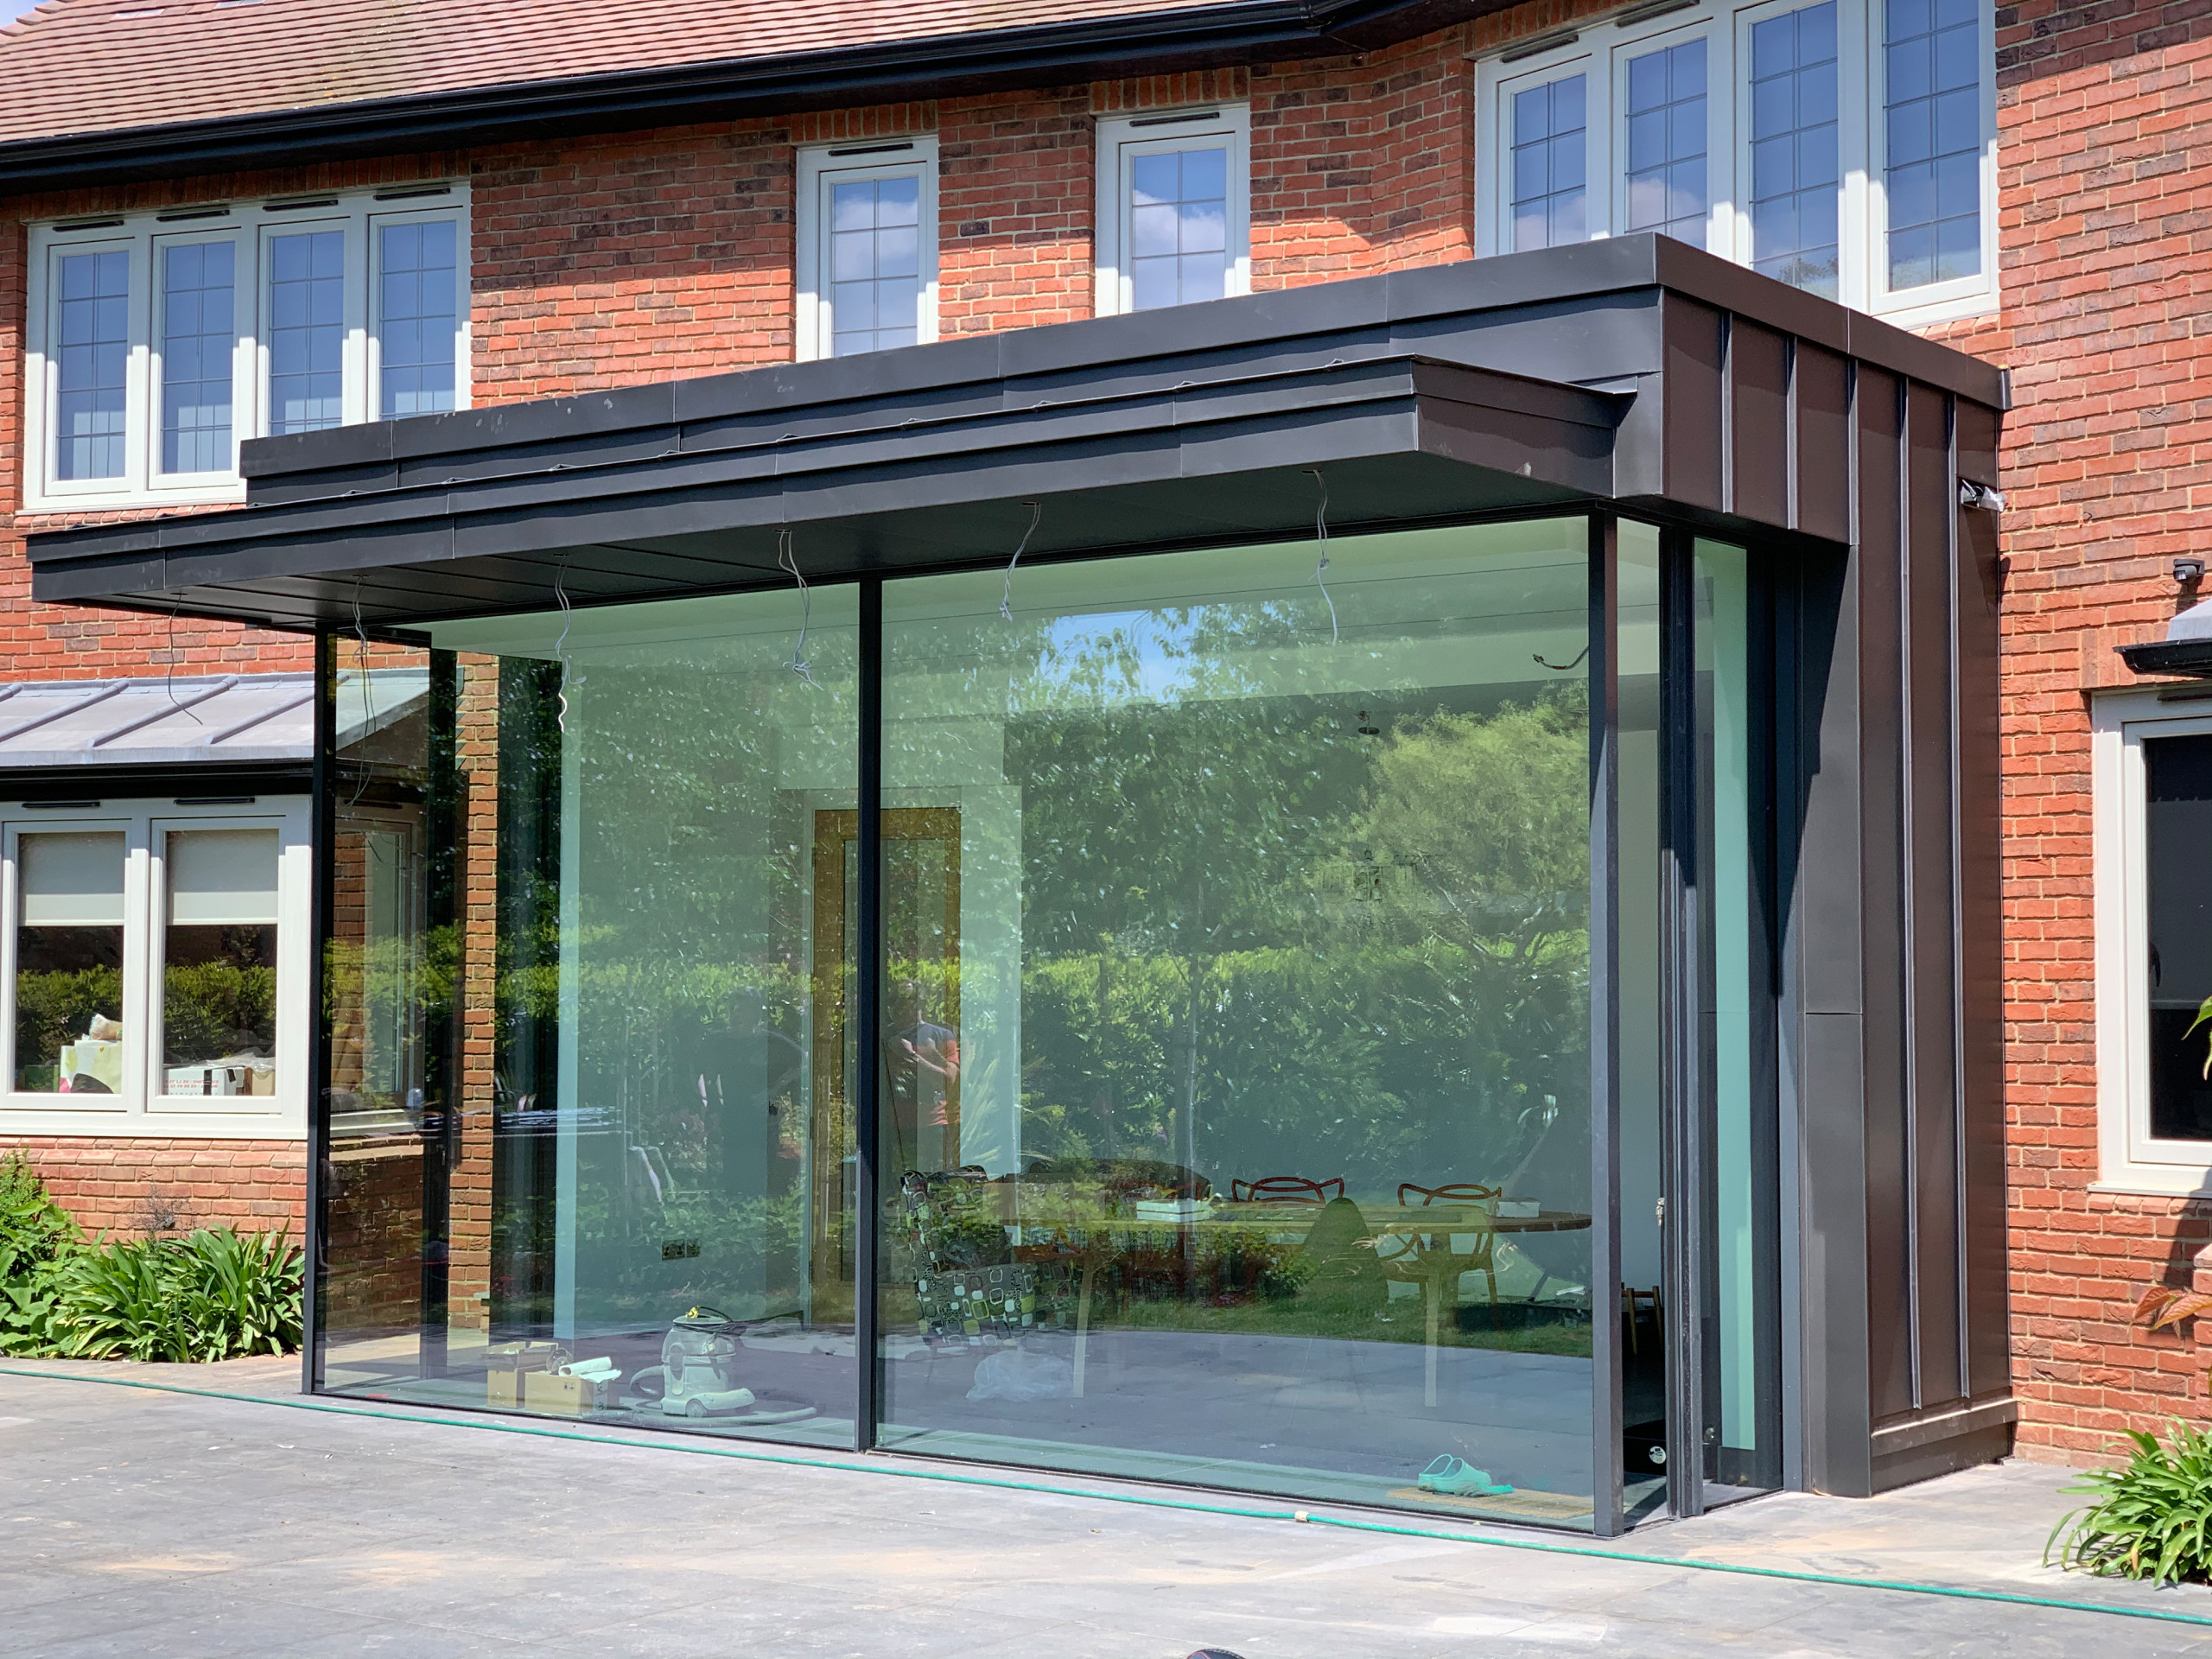 Ditton Grange Glass Box